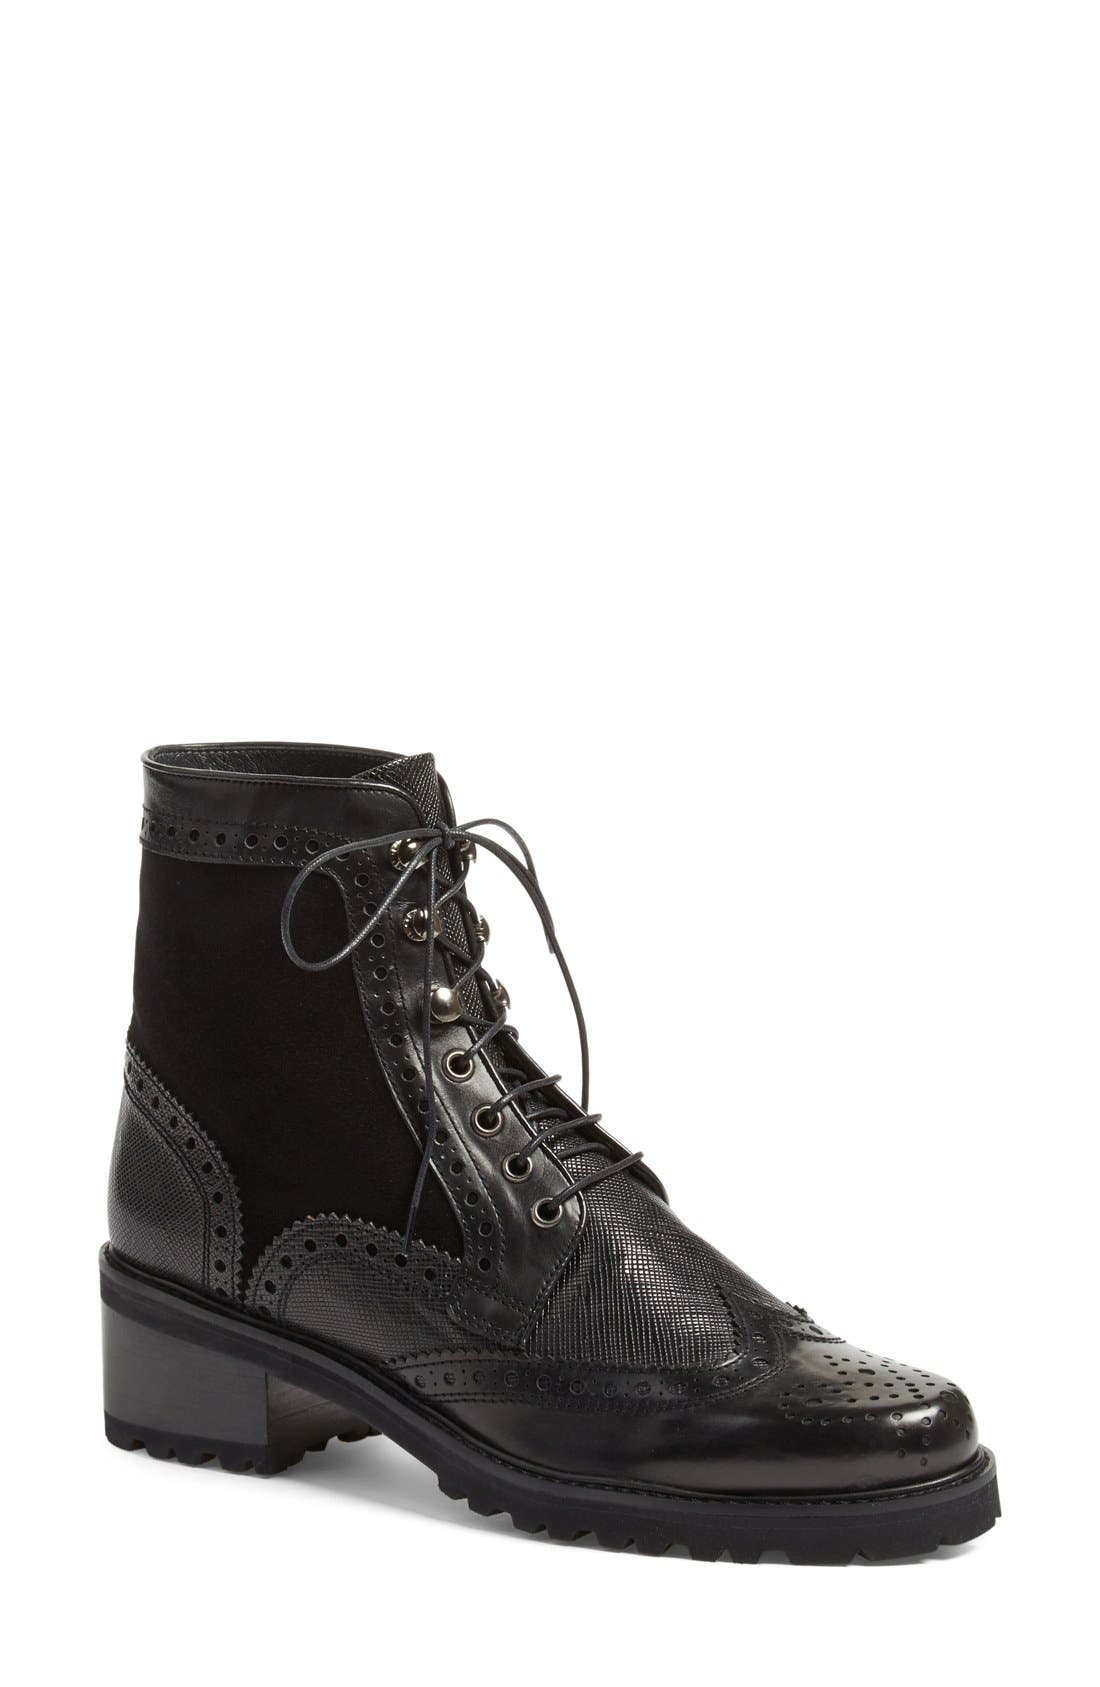 Alternate Image 1 Selected - Stuart Weitzman 'Brogen' Wingtip Boot (Women)